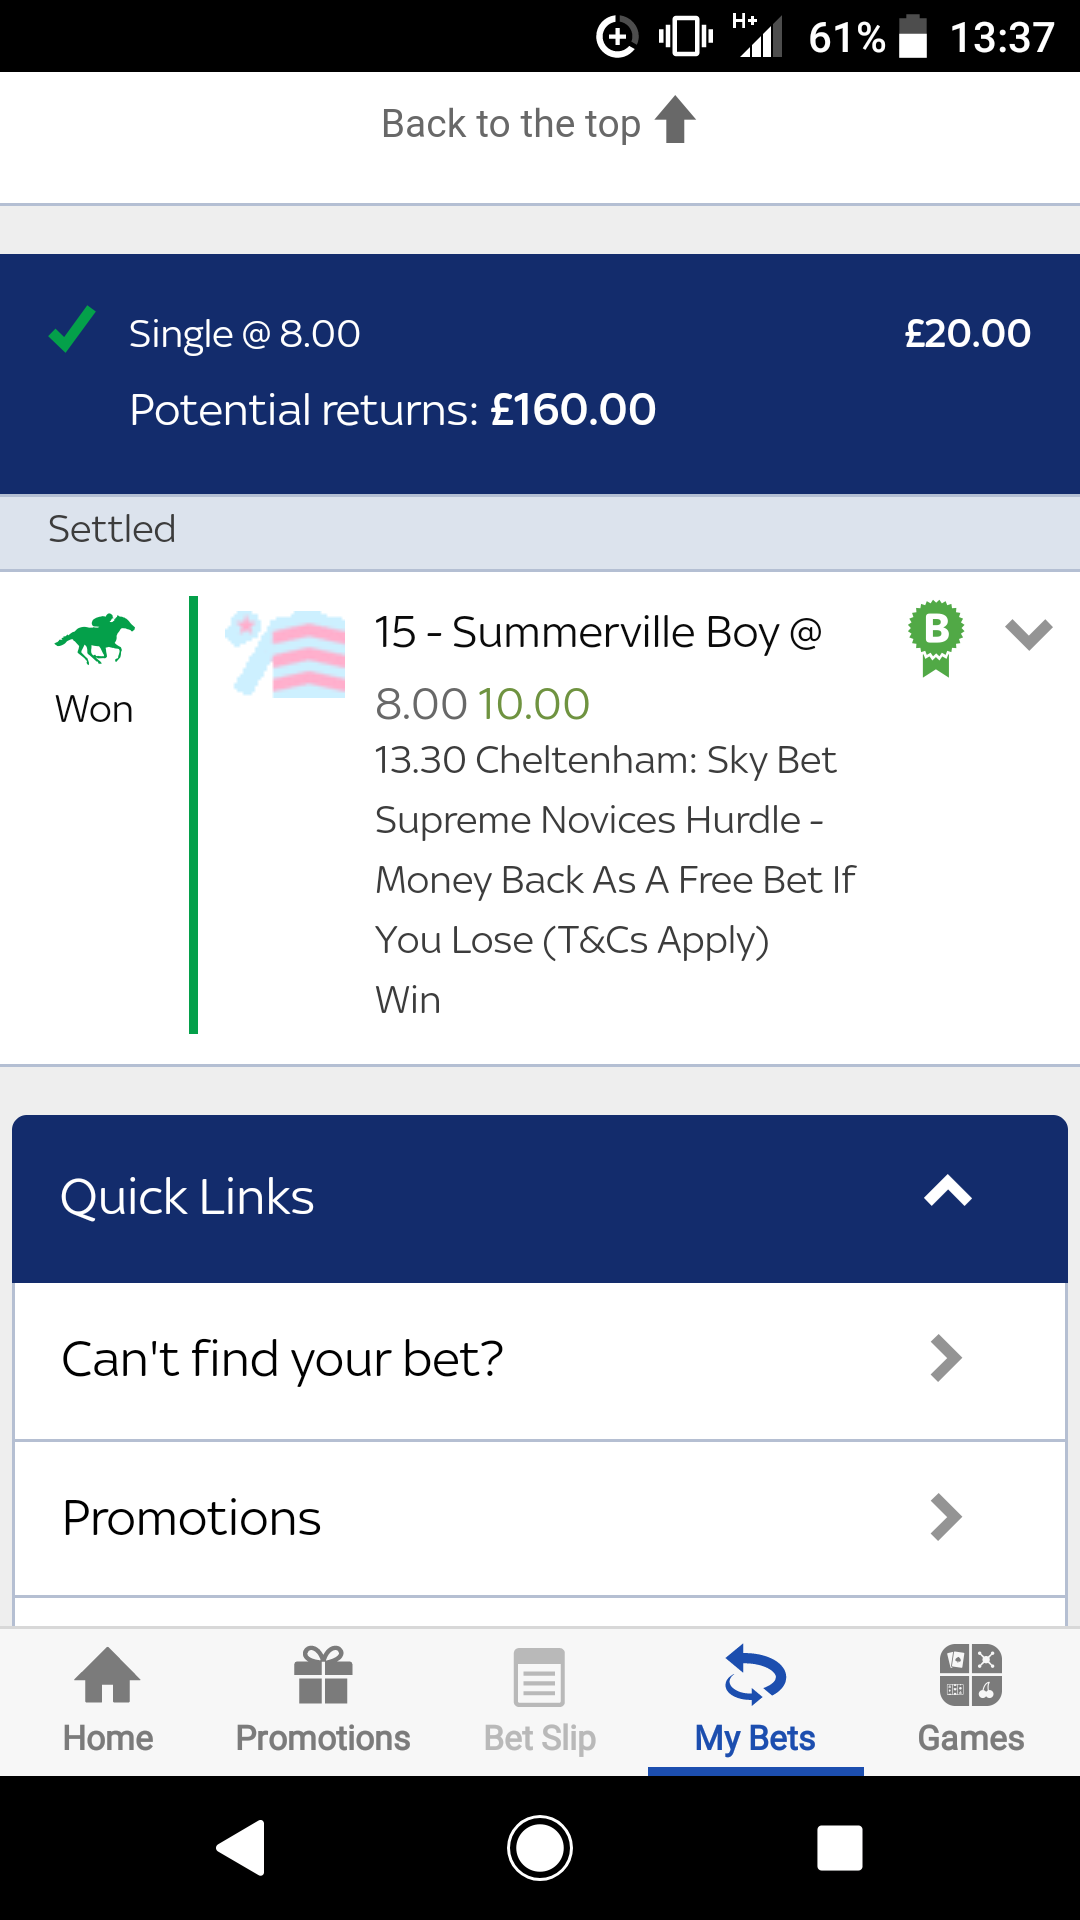 Get the fudge in there Summerville boy 👌🏻 - Horse Racing